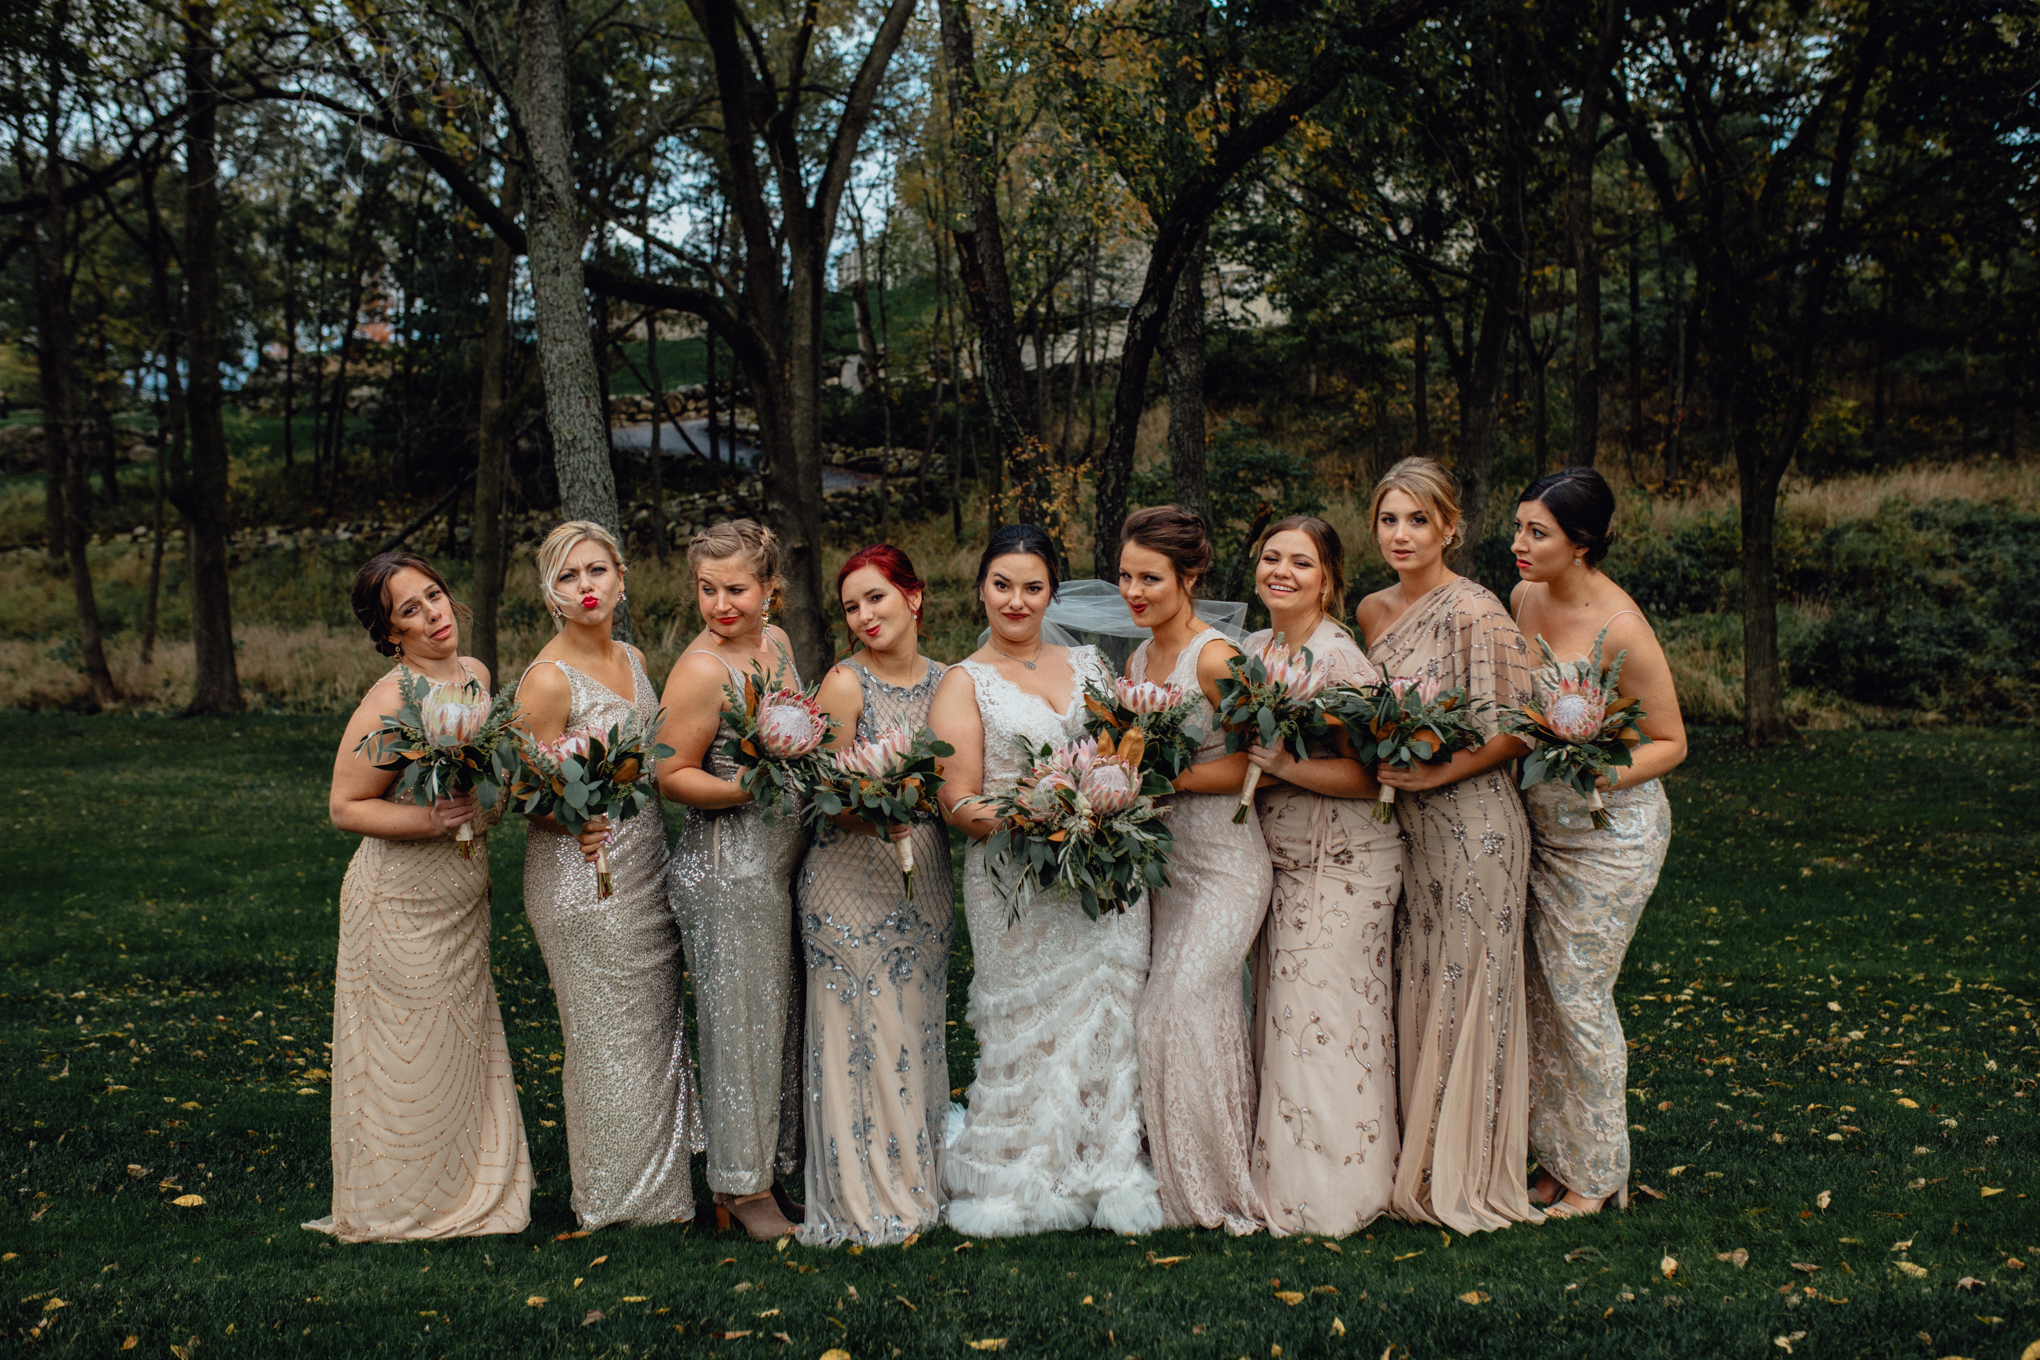 bridesmaids making kiss faces with bouquets in grass